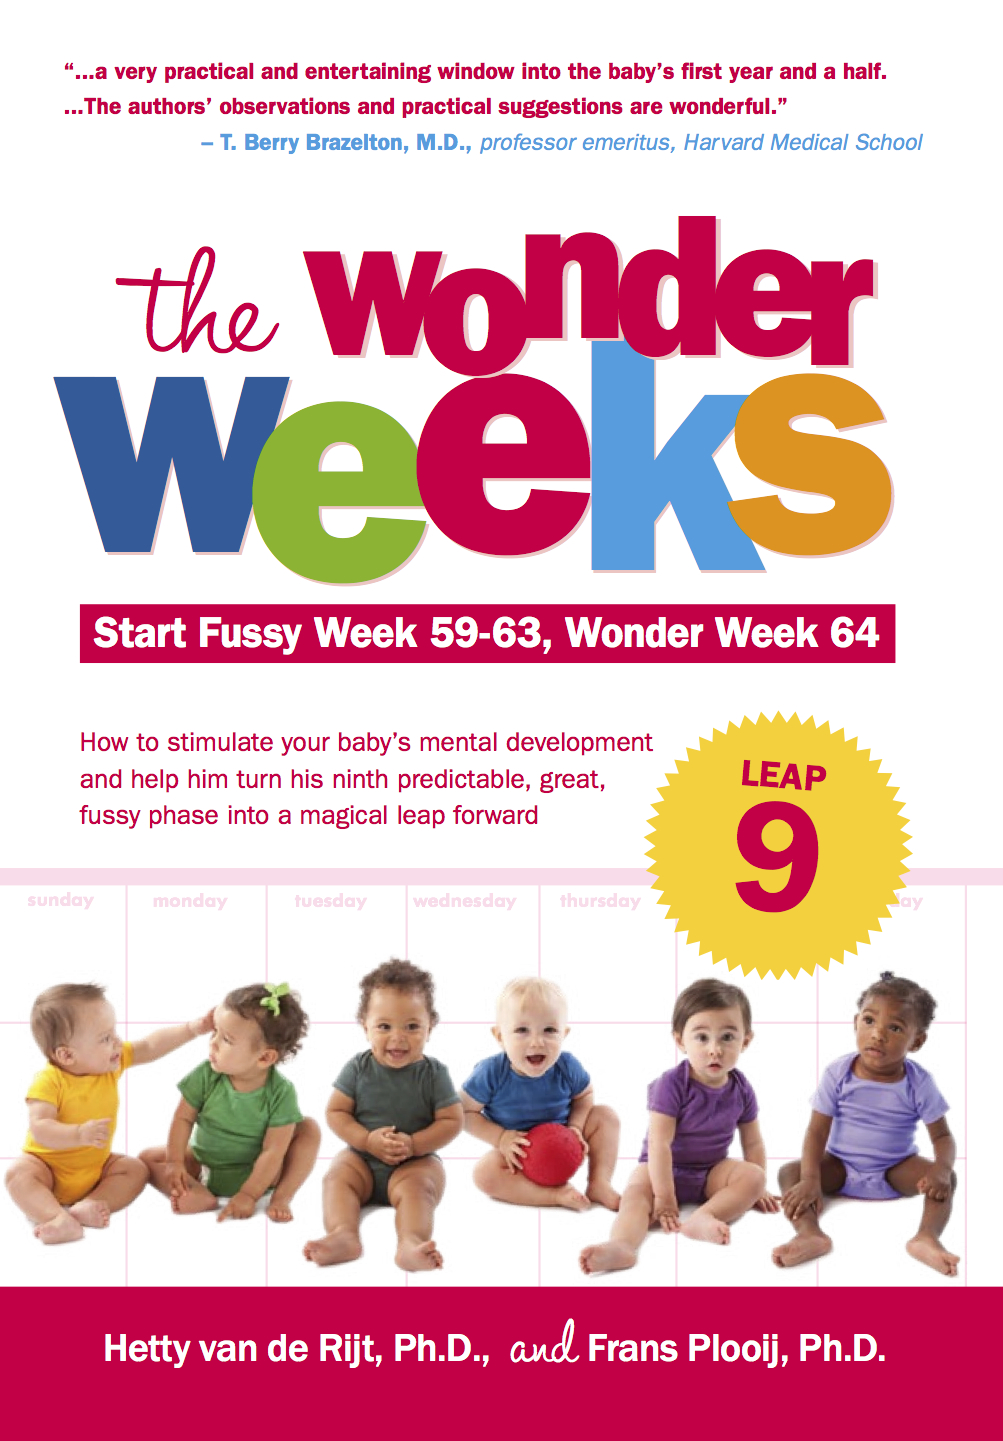 The Wonder Weeks, Leap 9